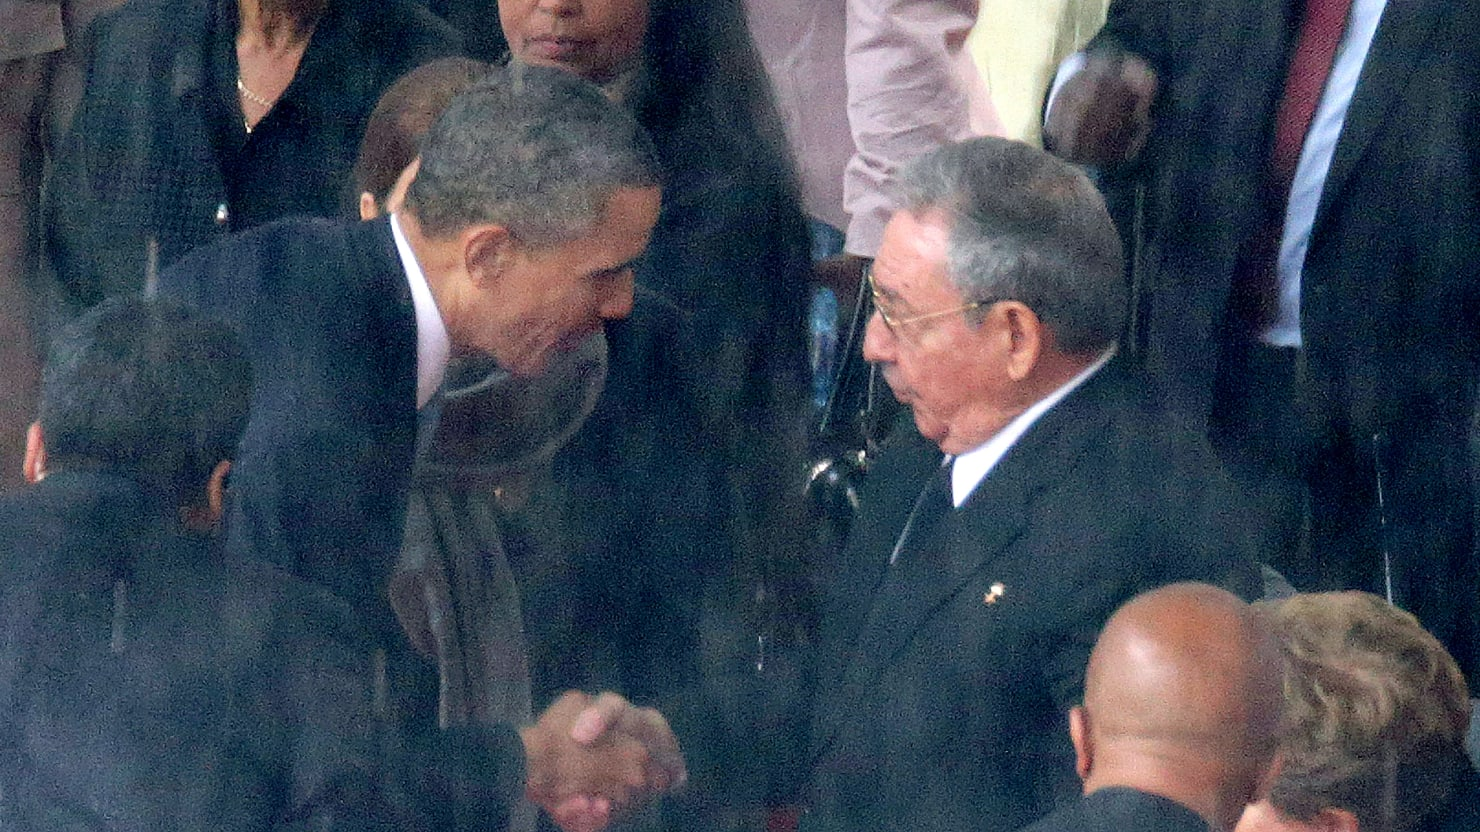 Raul Castro Reaches Out to Obama, But Don't Call It a Thaw